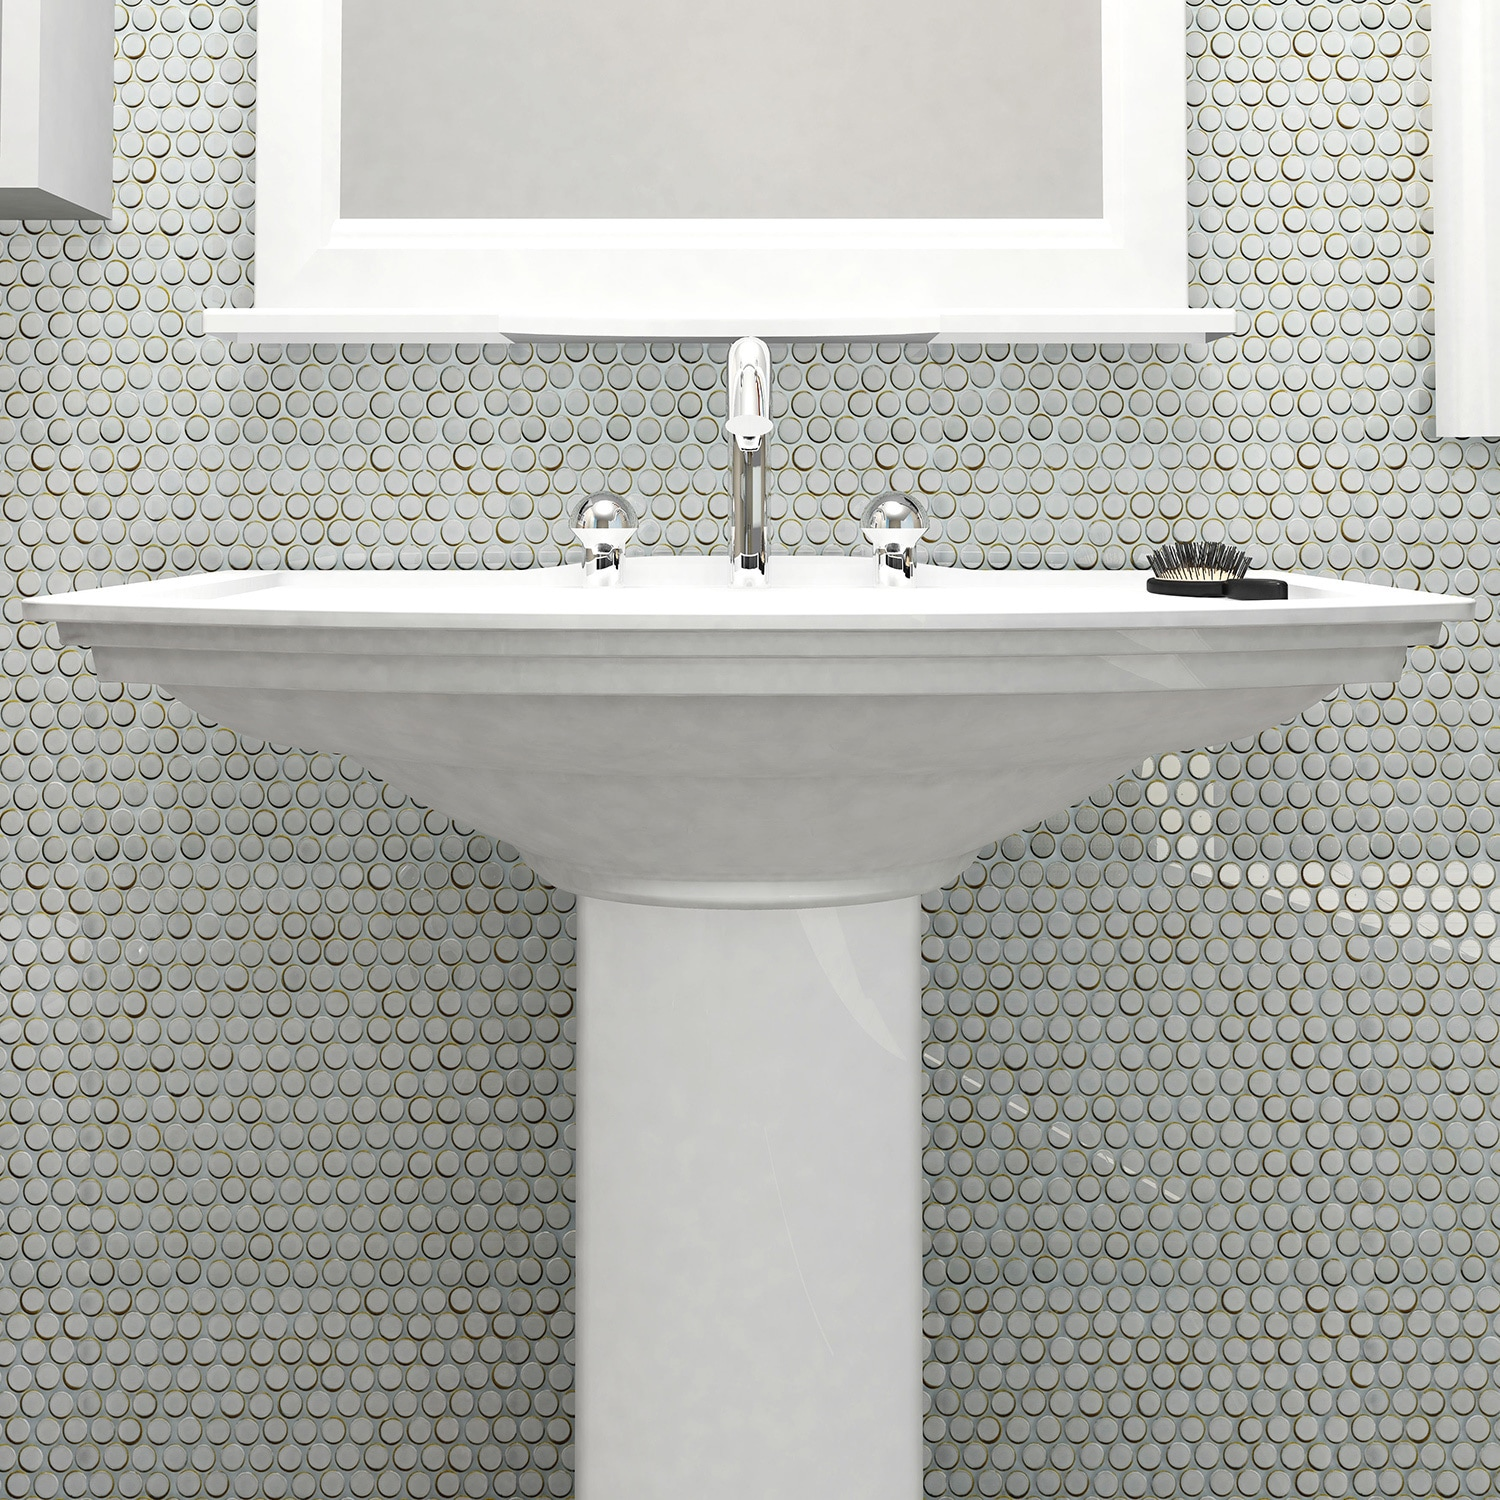 SomerTile 4x4.4-inch Penny Silk White Porcelain Mosaic Floor and Wall  Tile (4 tiles/4.4 sqft.)